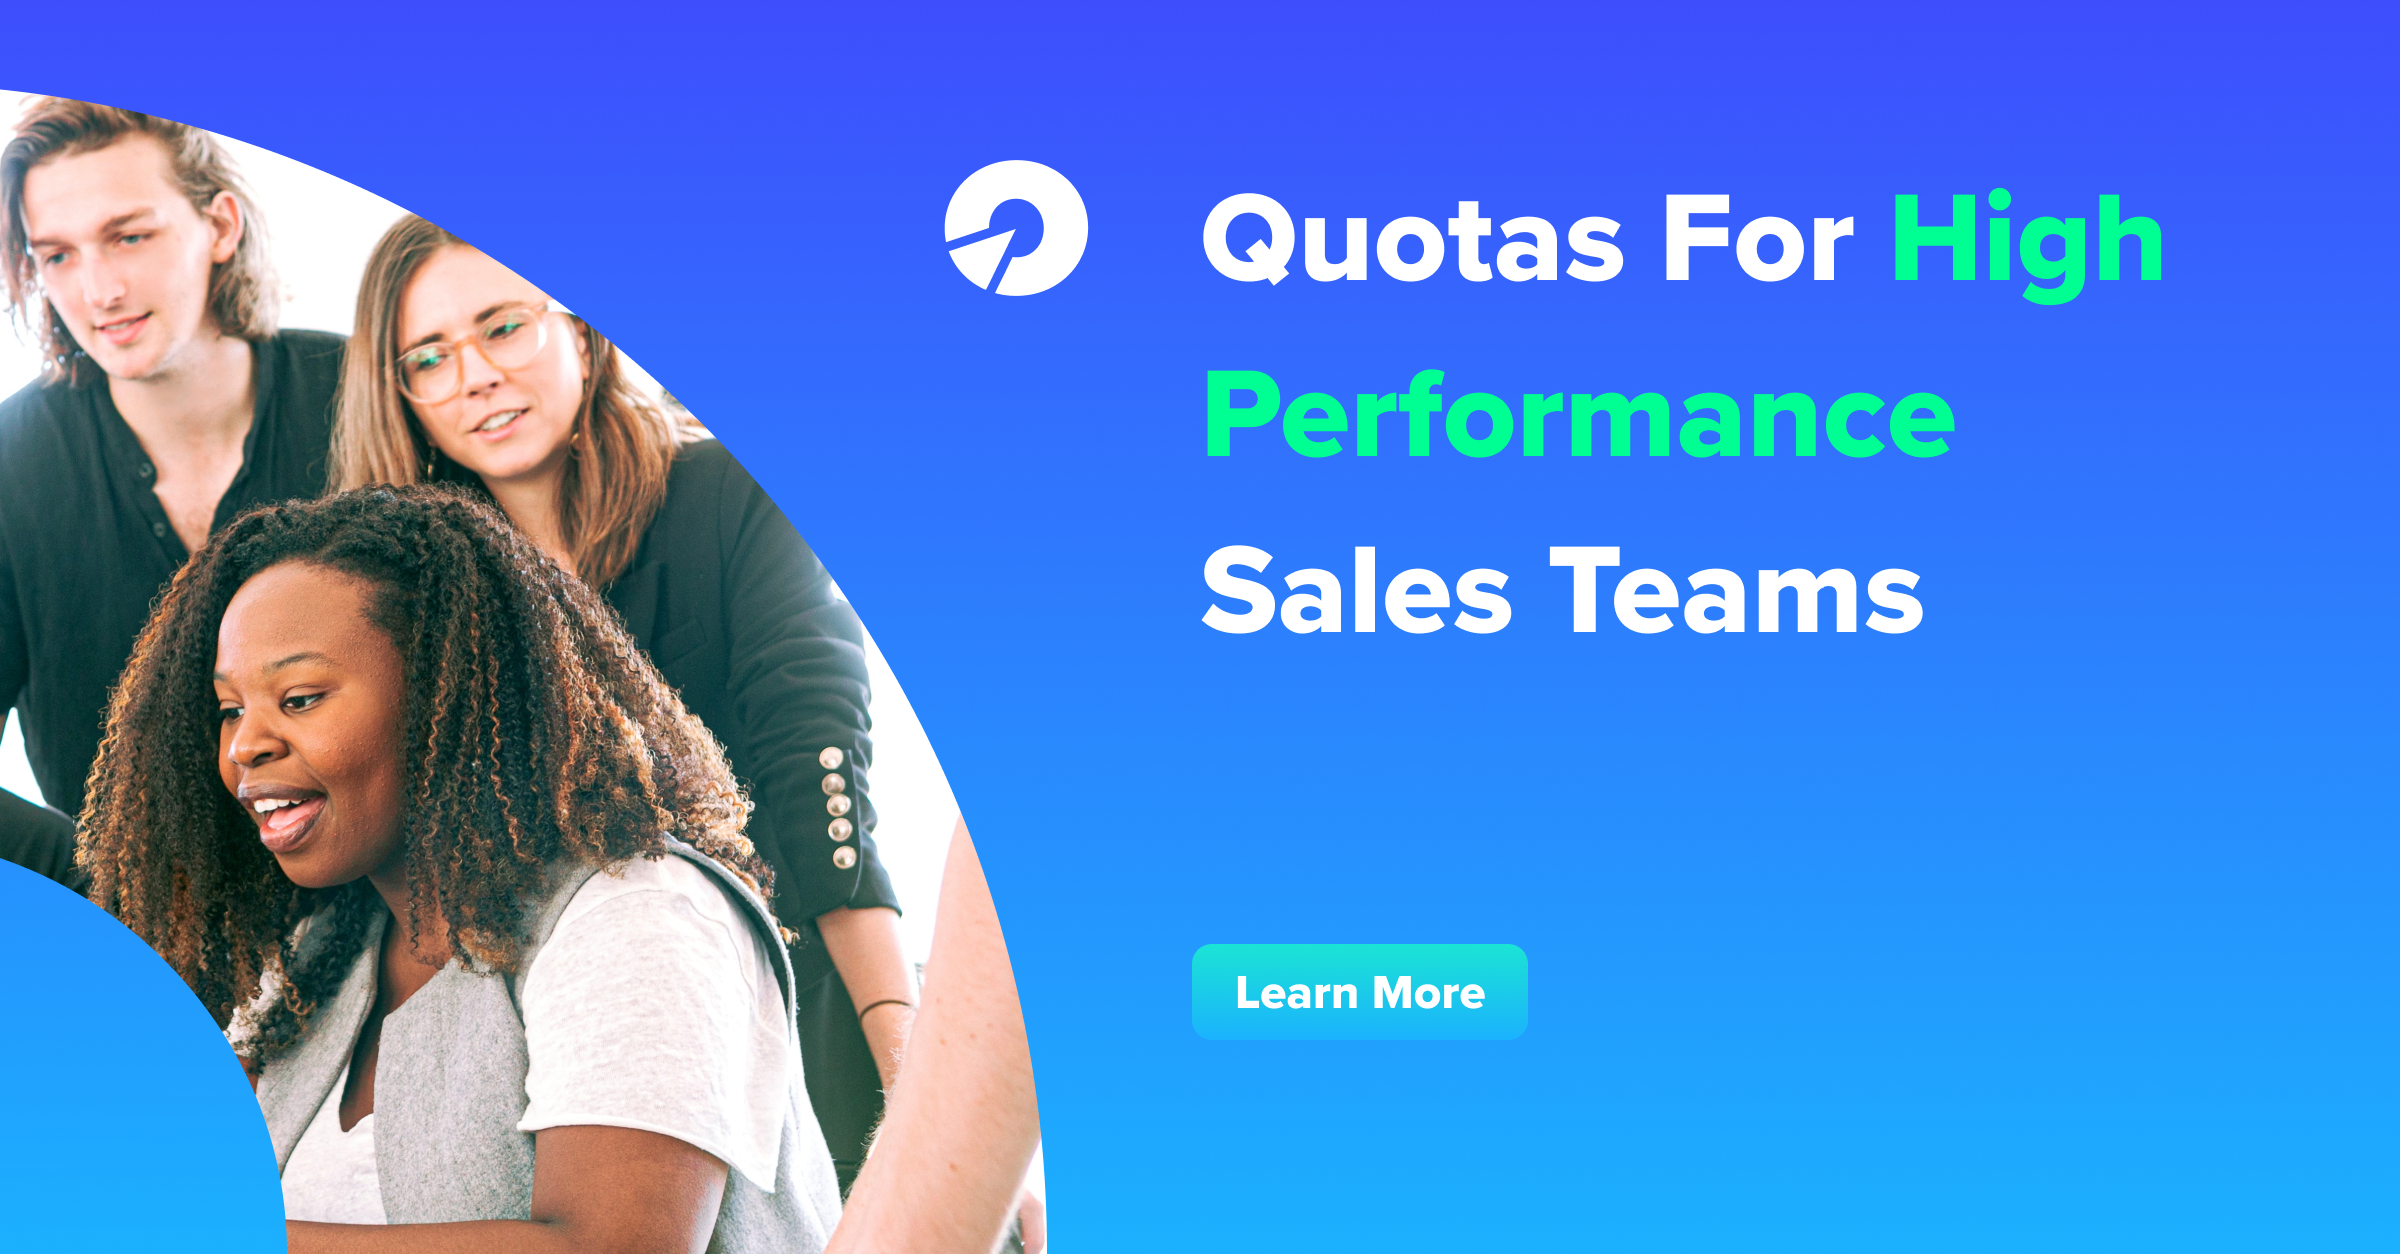 Quotas For High-Performance Sales Teams